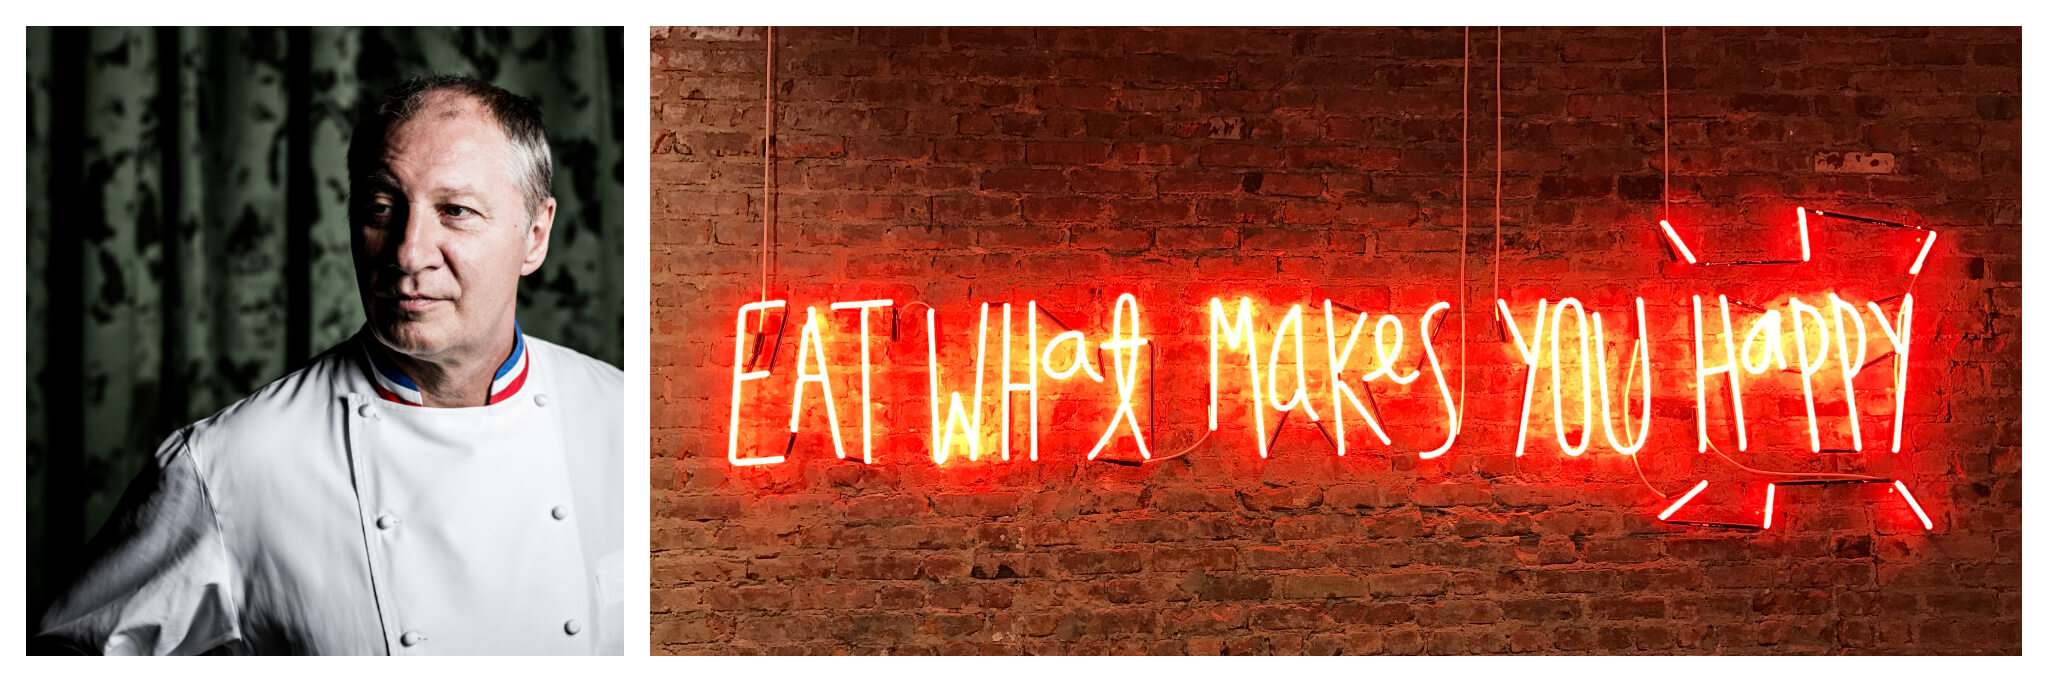 """Left: A headshot of Michelin-Star check Eric Frechon; he wear a chef's jacket and is standing in front of a green curtain with a shadow cast over the left side of his face. Right: A neon sign is illuminated, the words of the sign read """"Eat What Makes You Happy"""""""